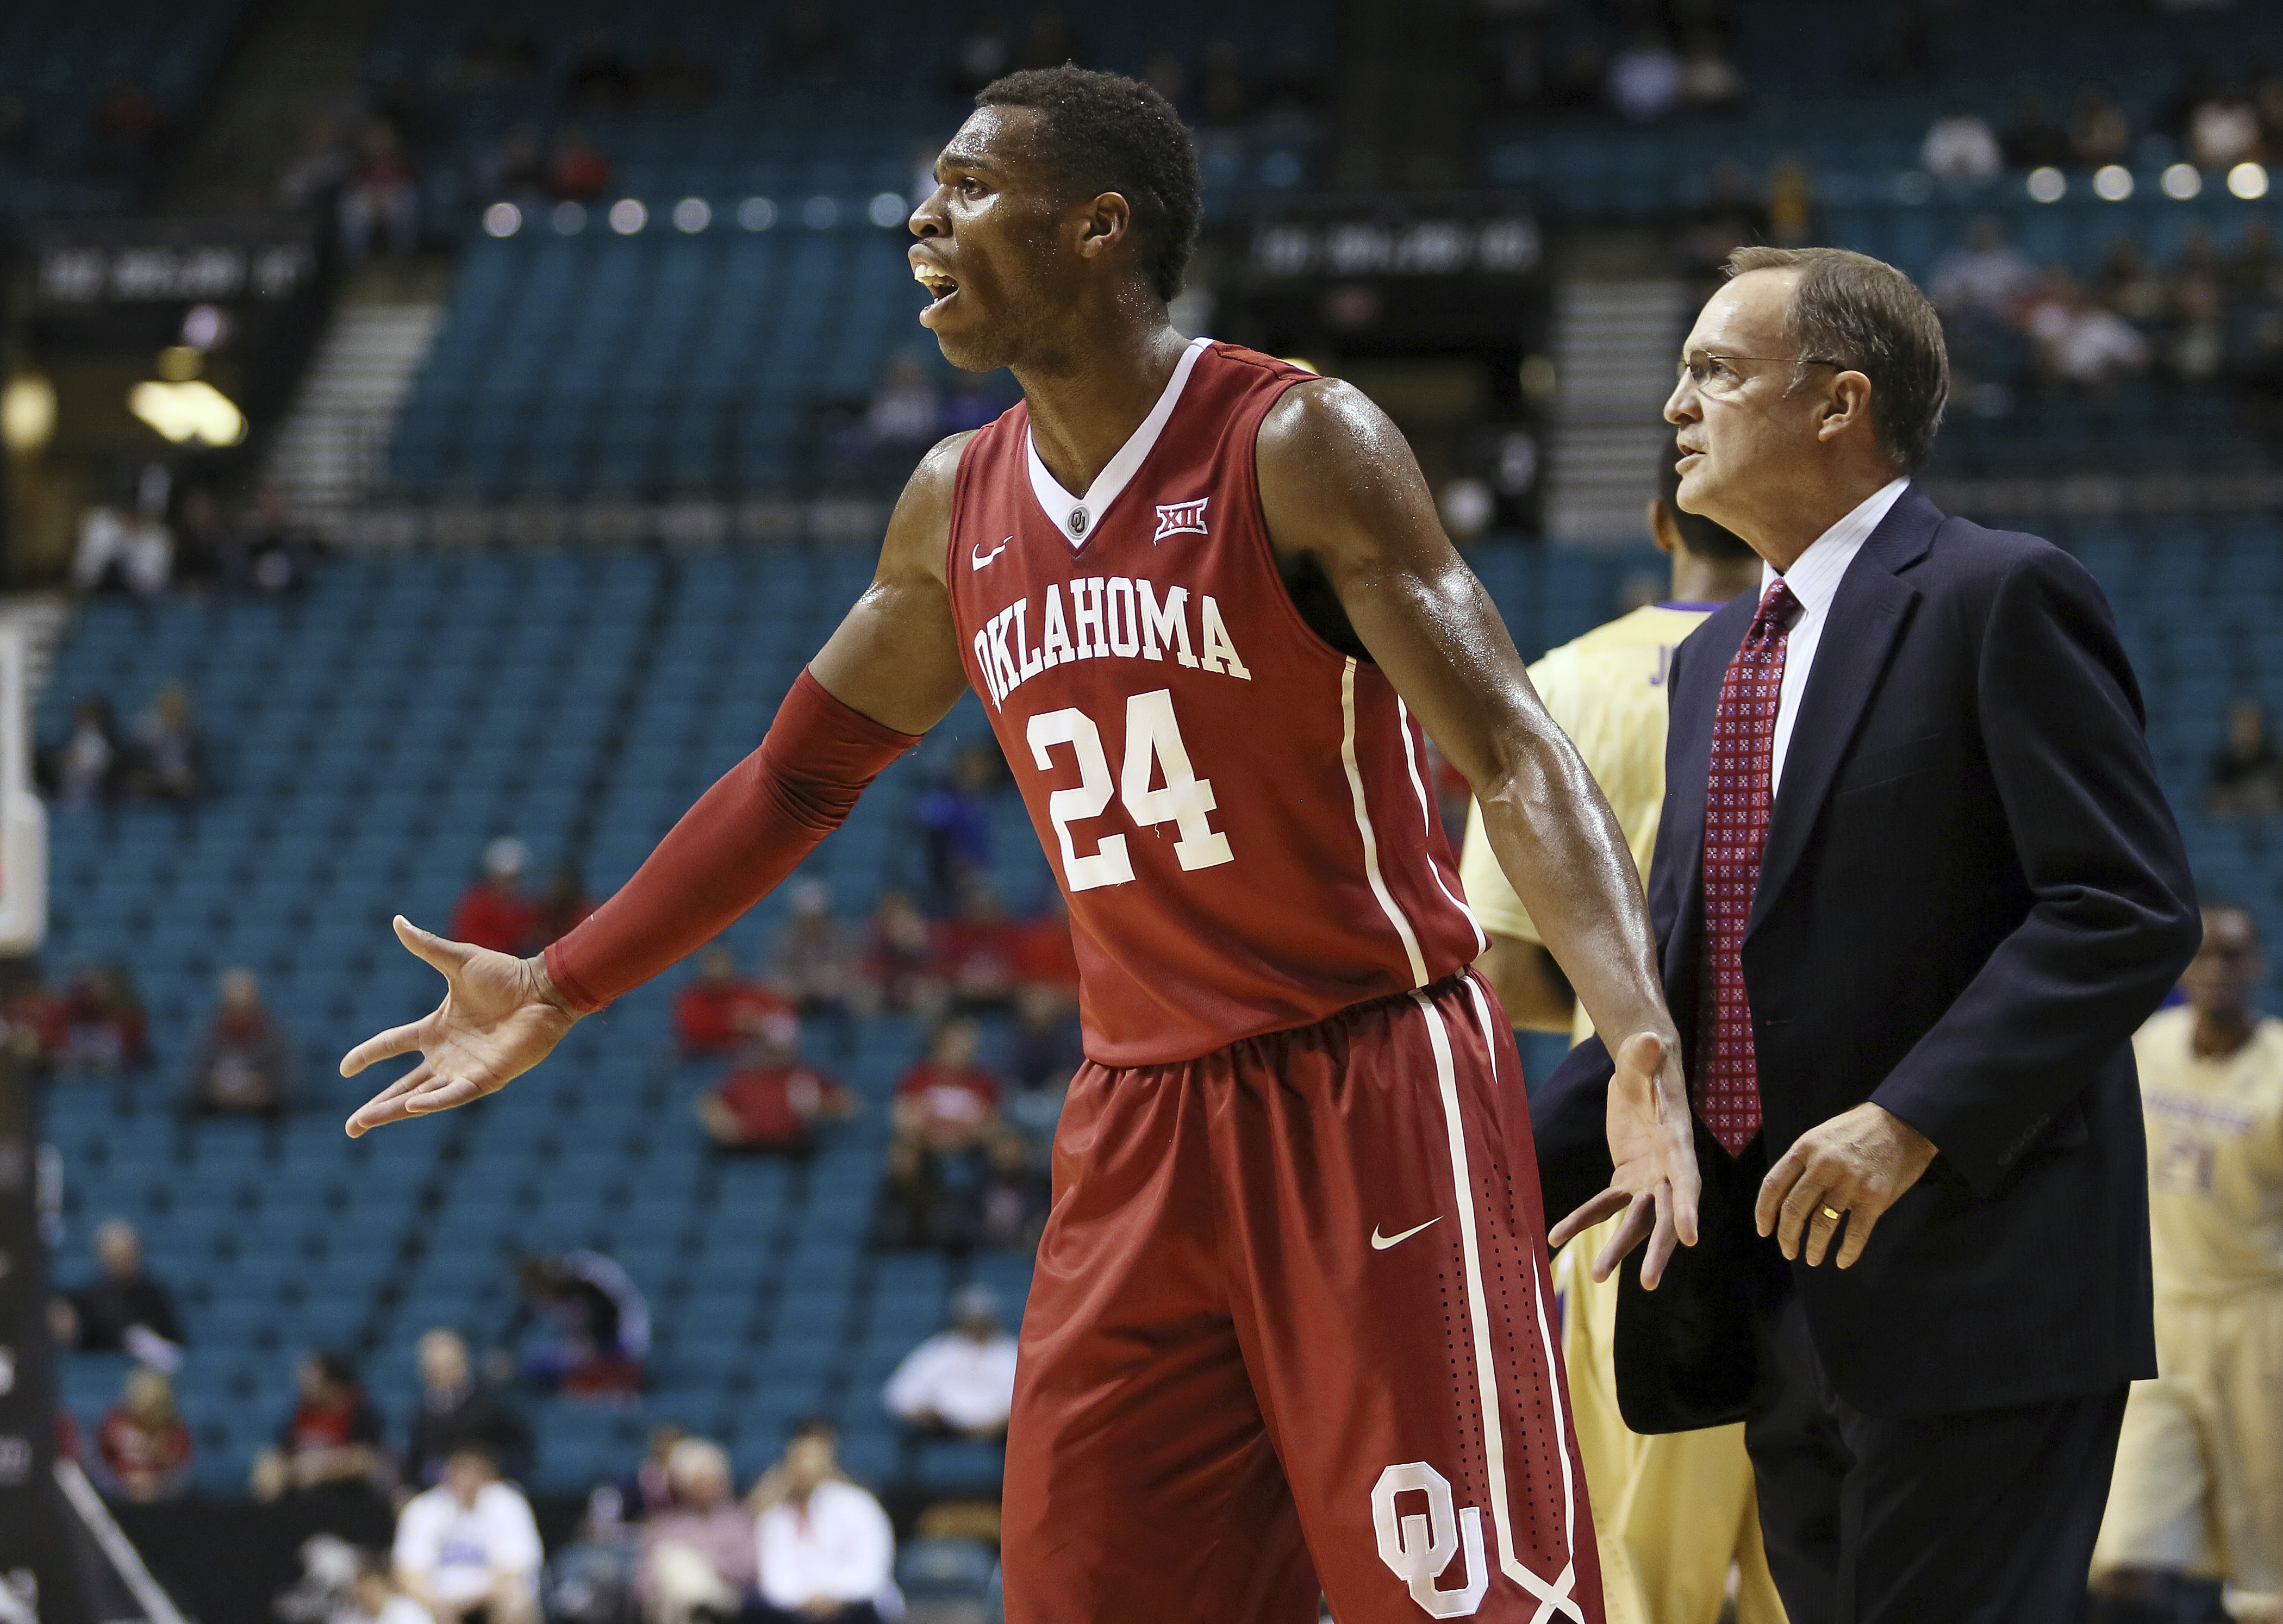 FILE - In this Dec. 20, 2014, file photo, Oklahoma's Buddy Hield reacts to a call during the first half of a NCAA college basketball game against Washington in Las Vegas. Oklahoma coach Lon Kruger is at right. Kruger appears poised for the best run of his